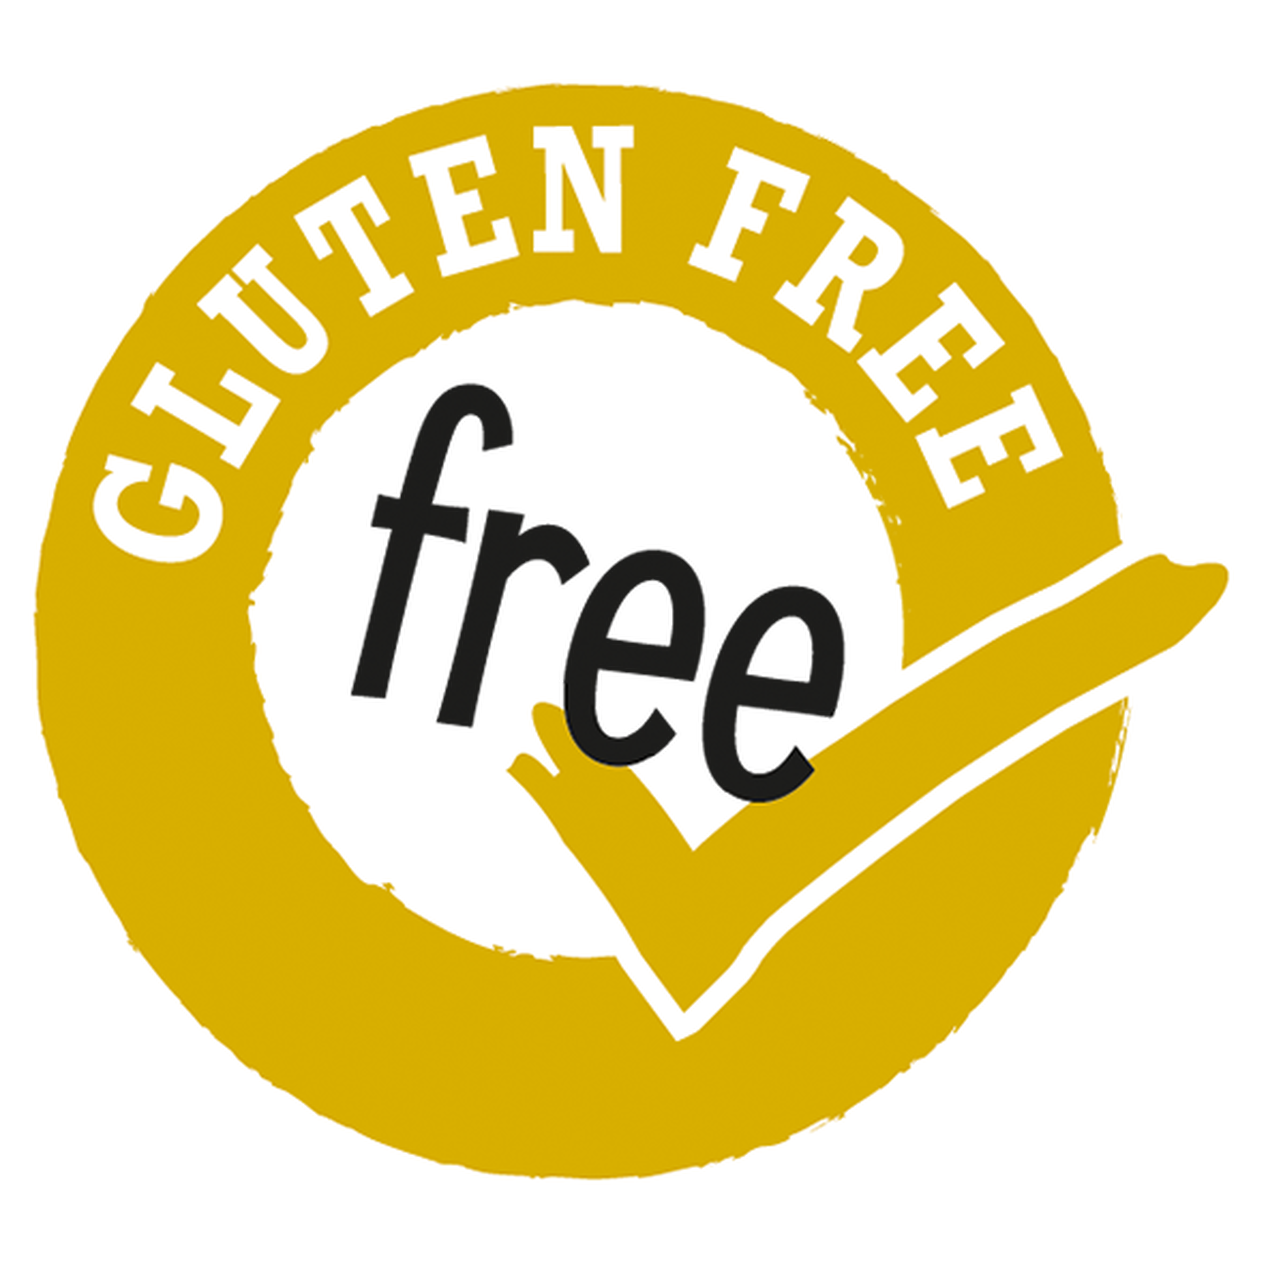 Glutenfree - Naarmann